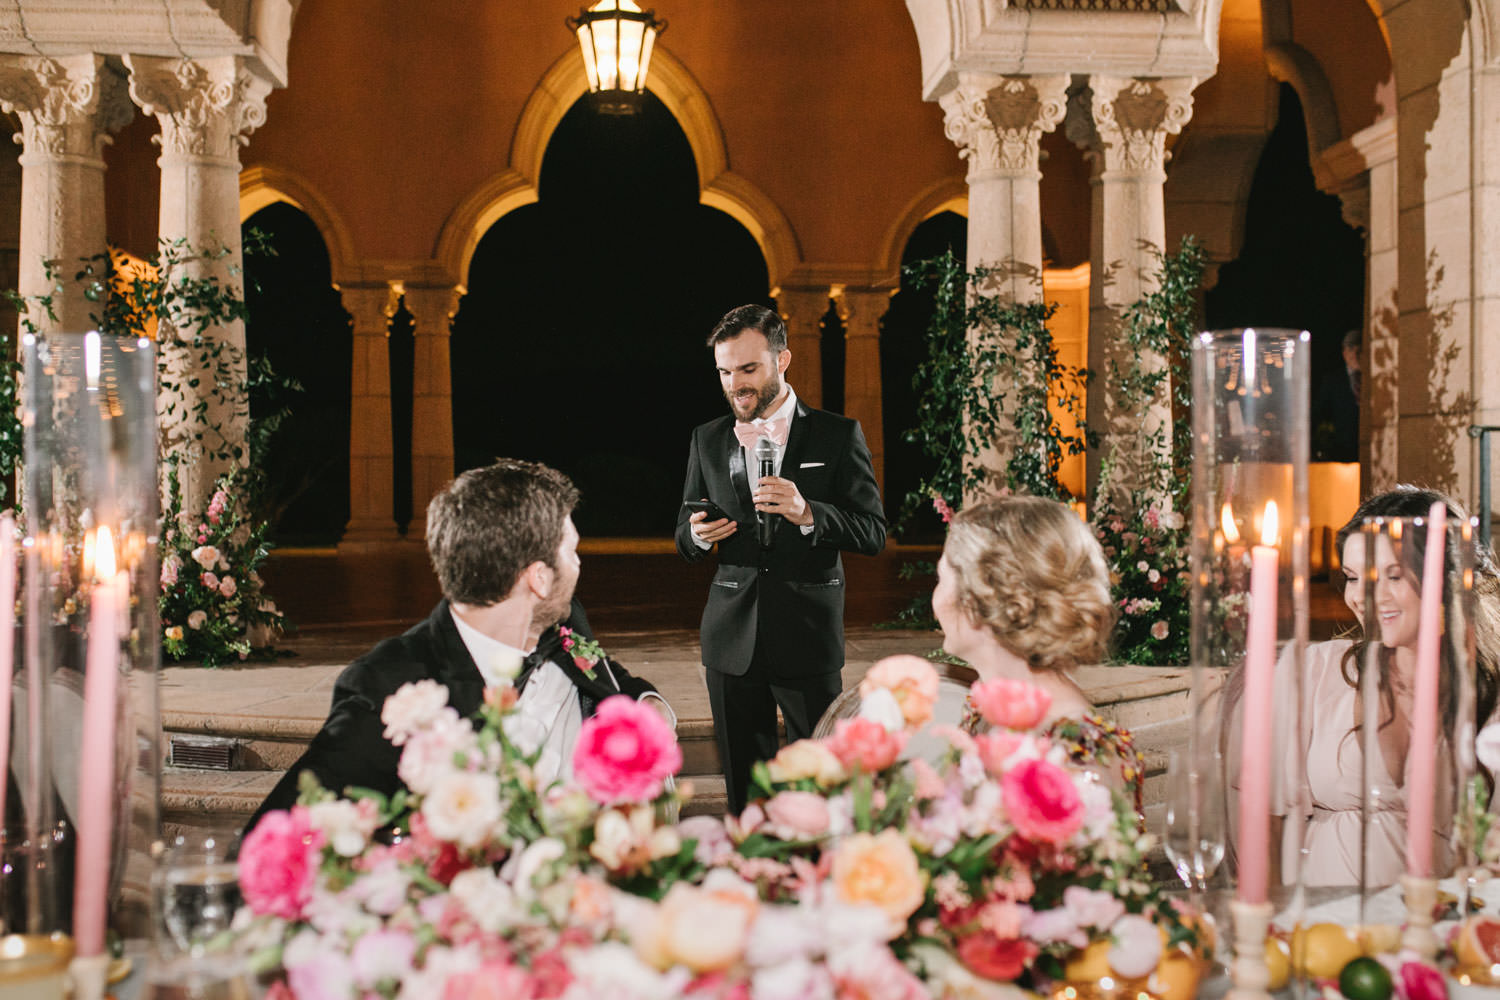 Bridesman toast on a stage with columns covered in climbing smilax with arrangement at the bottom consisting of roses, ranunculus, daffodils, peonies, and sweet peas. A Wedding Photographer's Fairmont Grand Del Mar Wedding